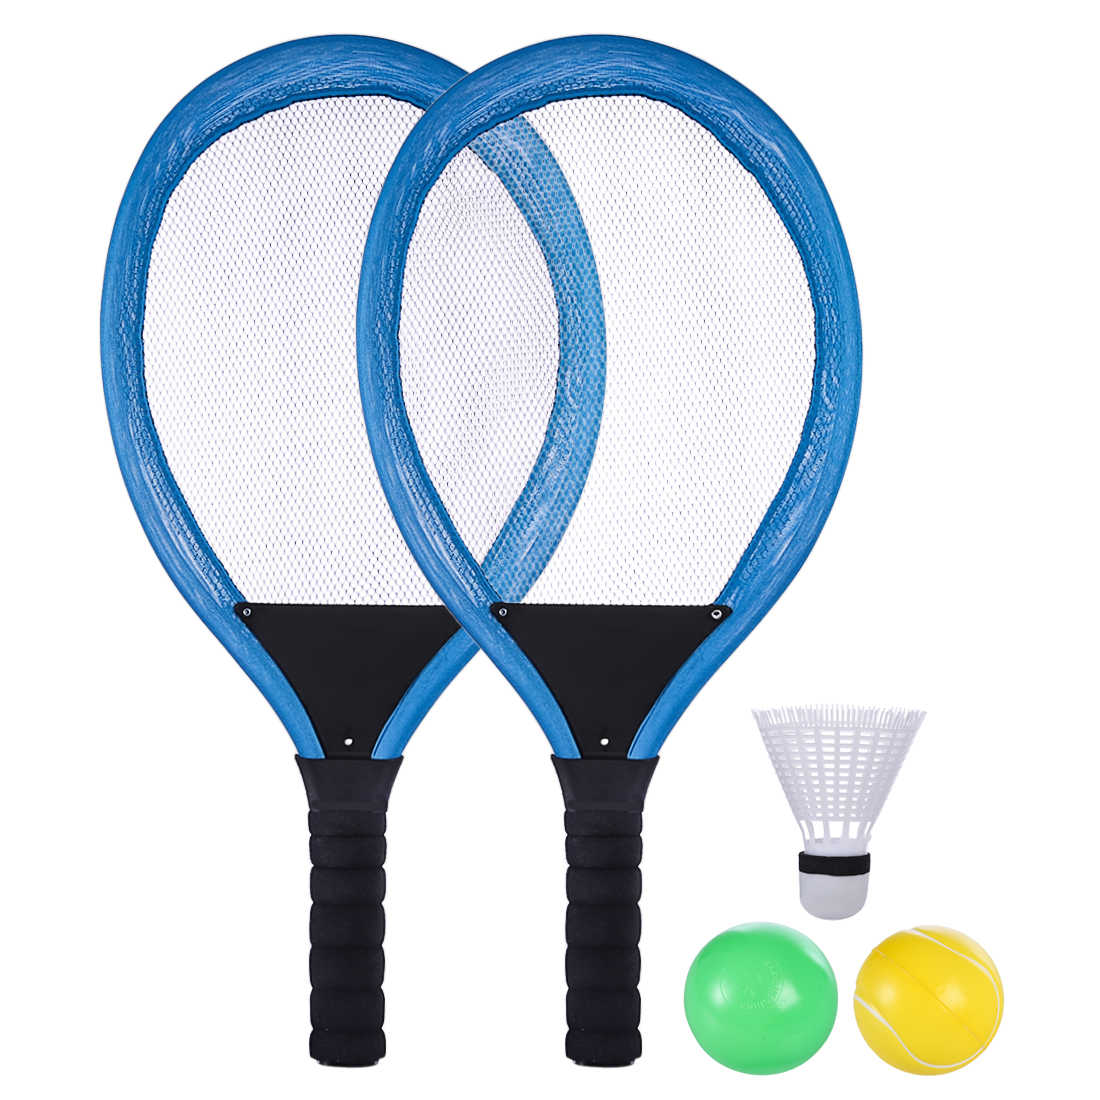 2Pcs Outdoor Sports Cloth Tennis Racket Training Racquet for Children Kids Outdoor - Blue